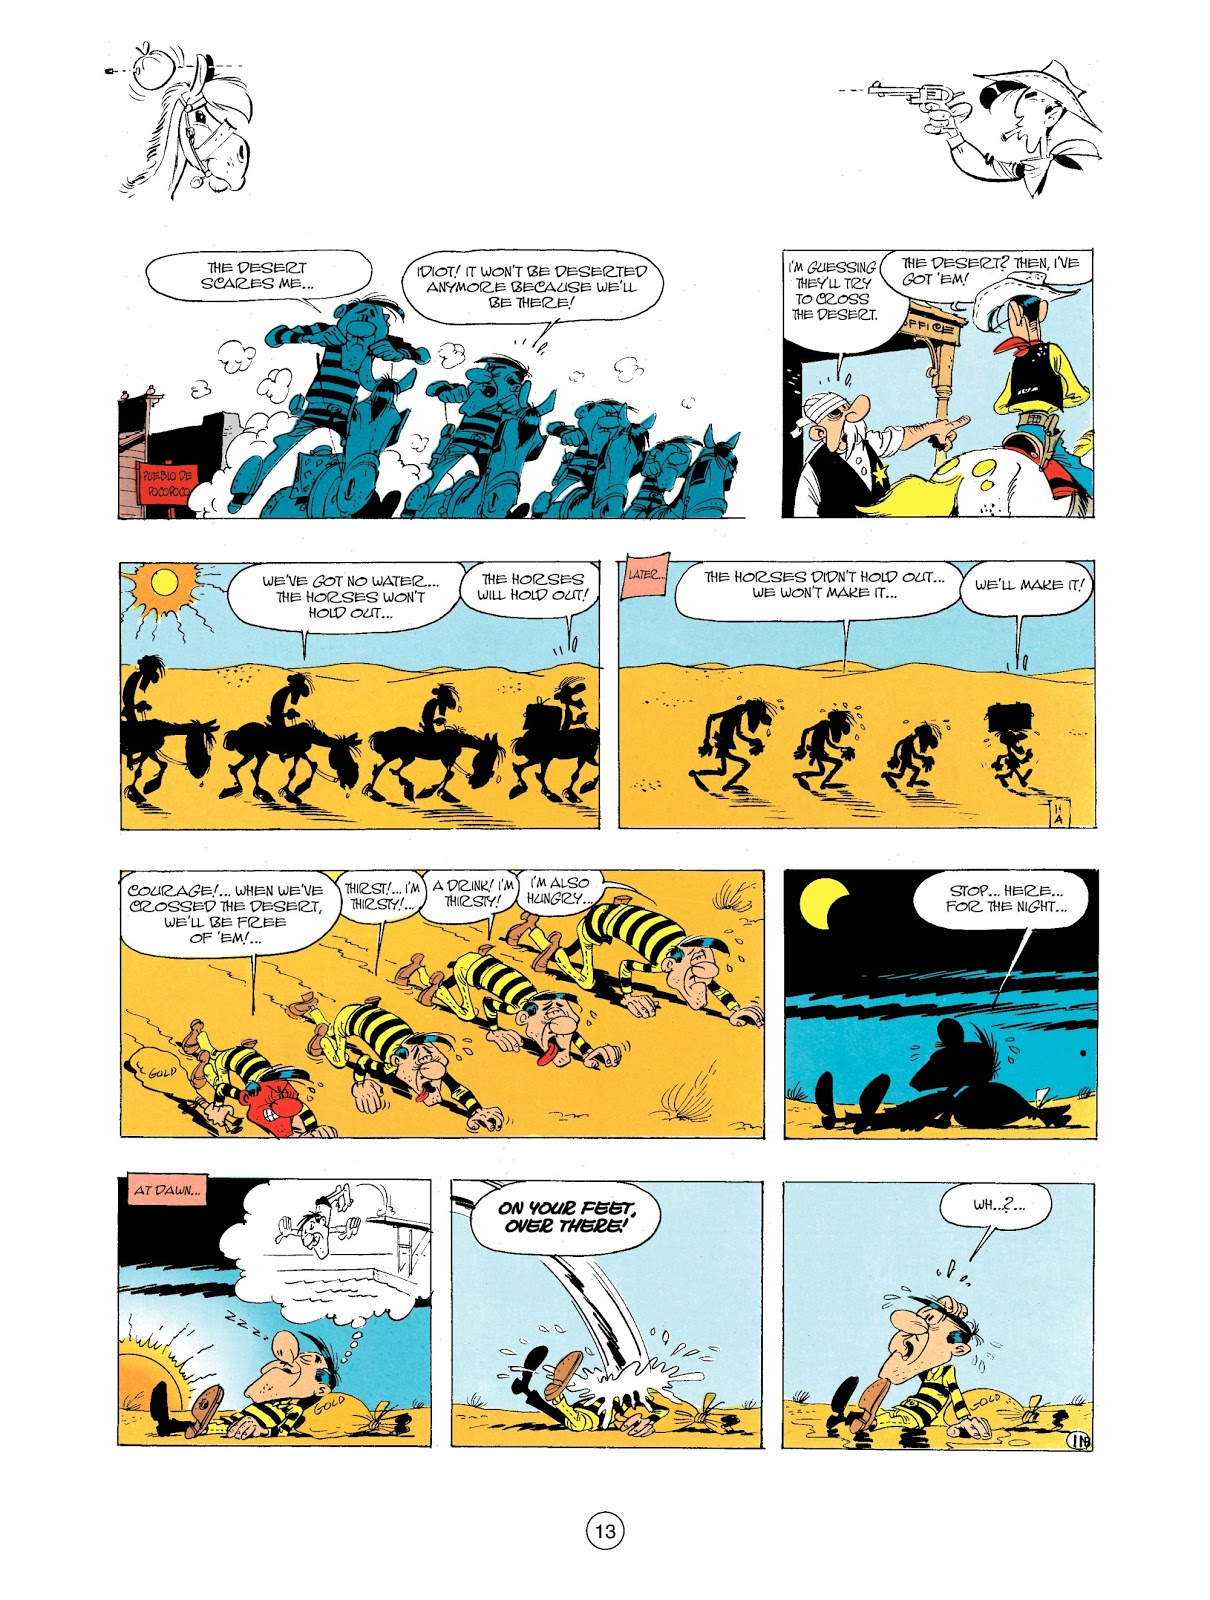 Lucky Luke the Daltons Always on the Run review